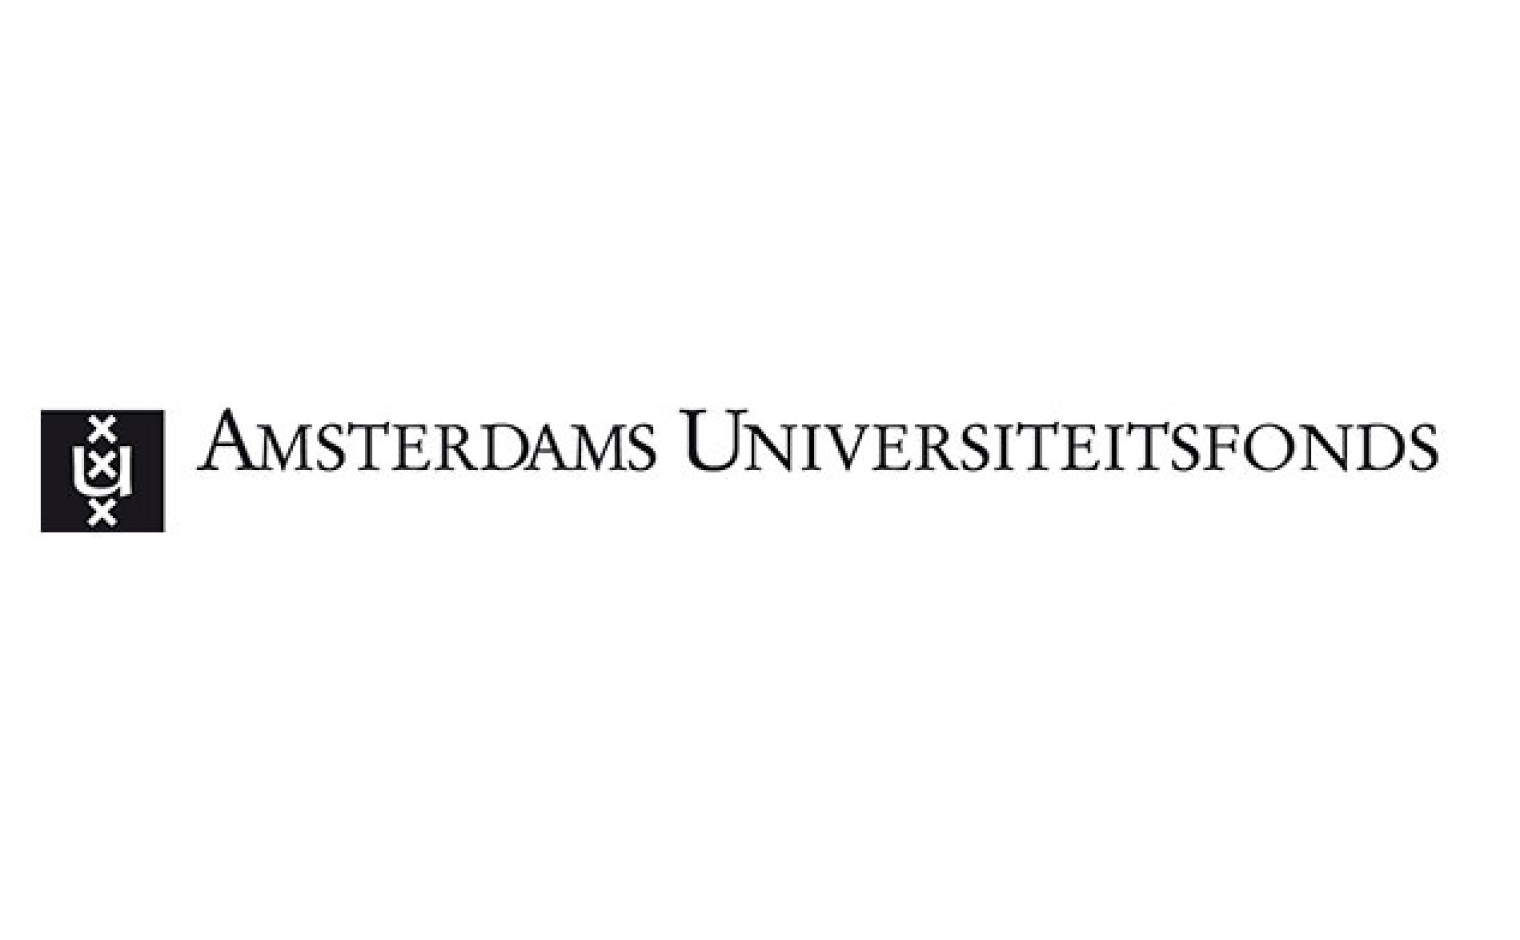 Logo Amsterdams Universiteitsfonds